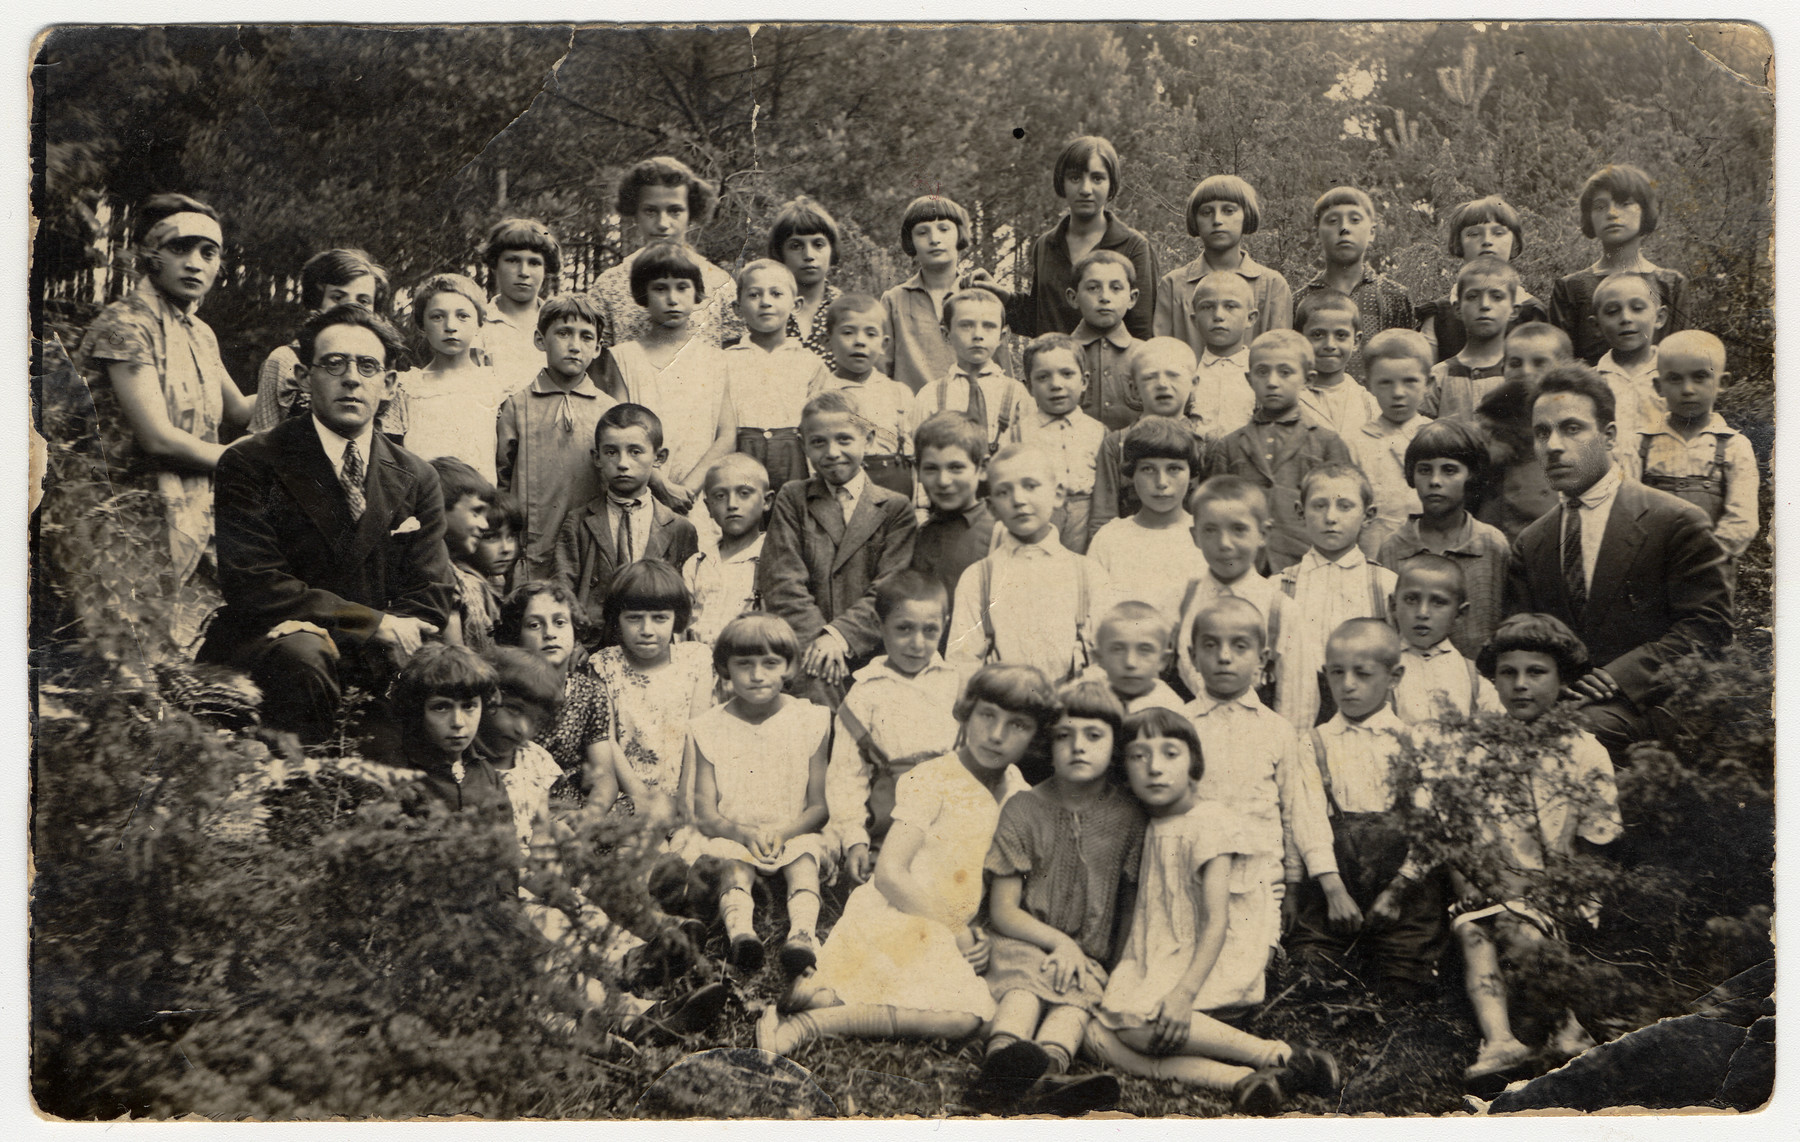 Group portrait of the children and teachers of a Jewish school in Traby.  Among those pictured is Izhak Kozlowsky, the Hebrew teacher, on the far left.